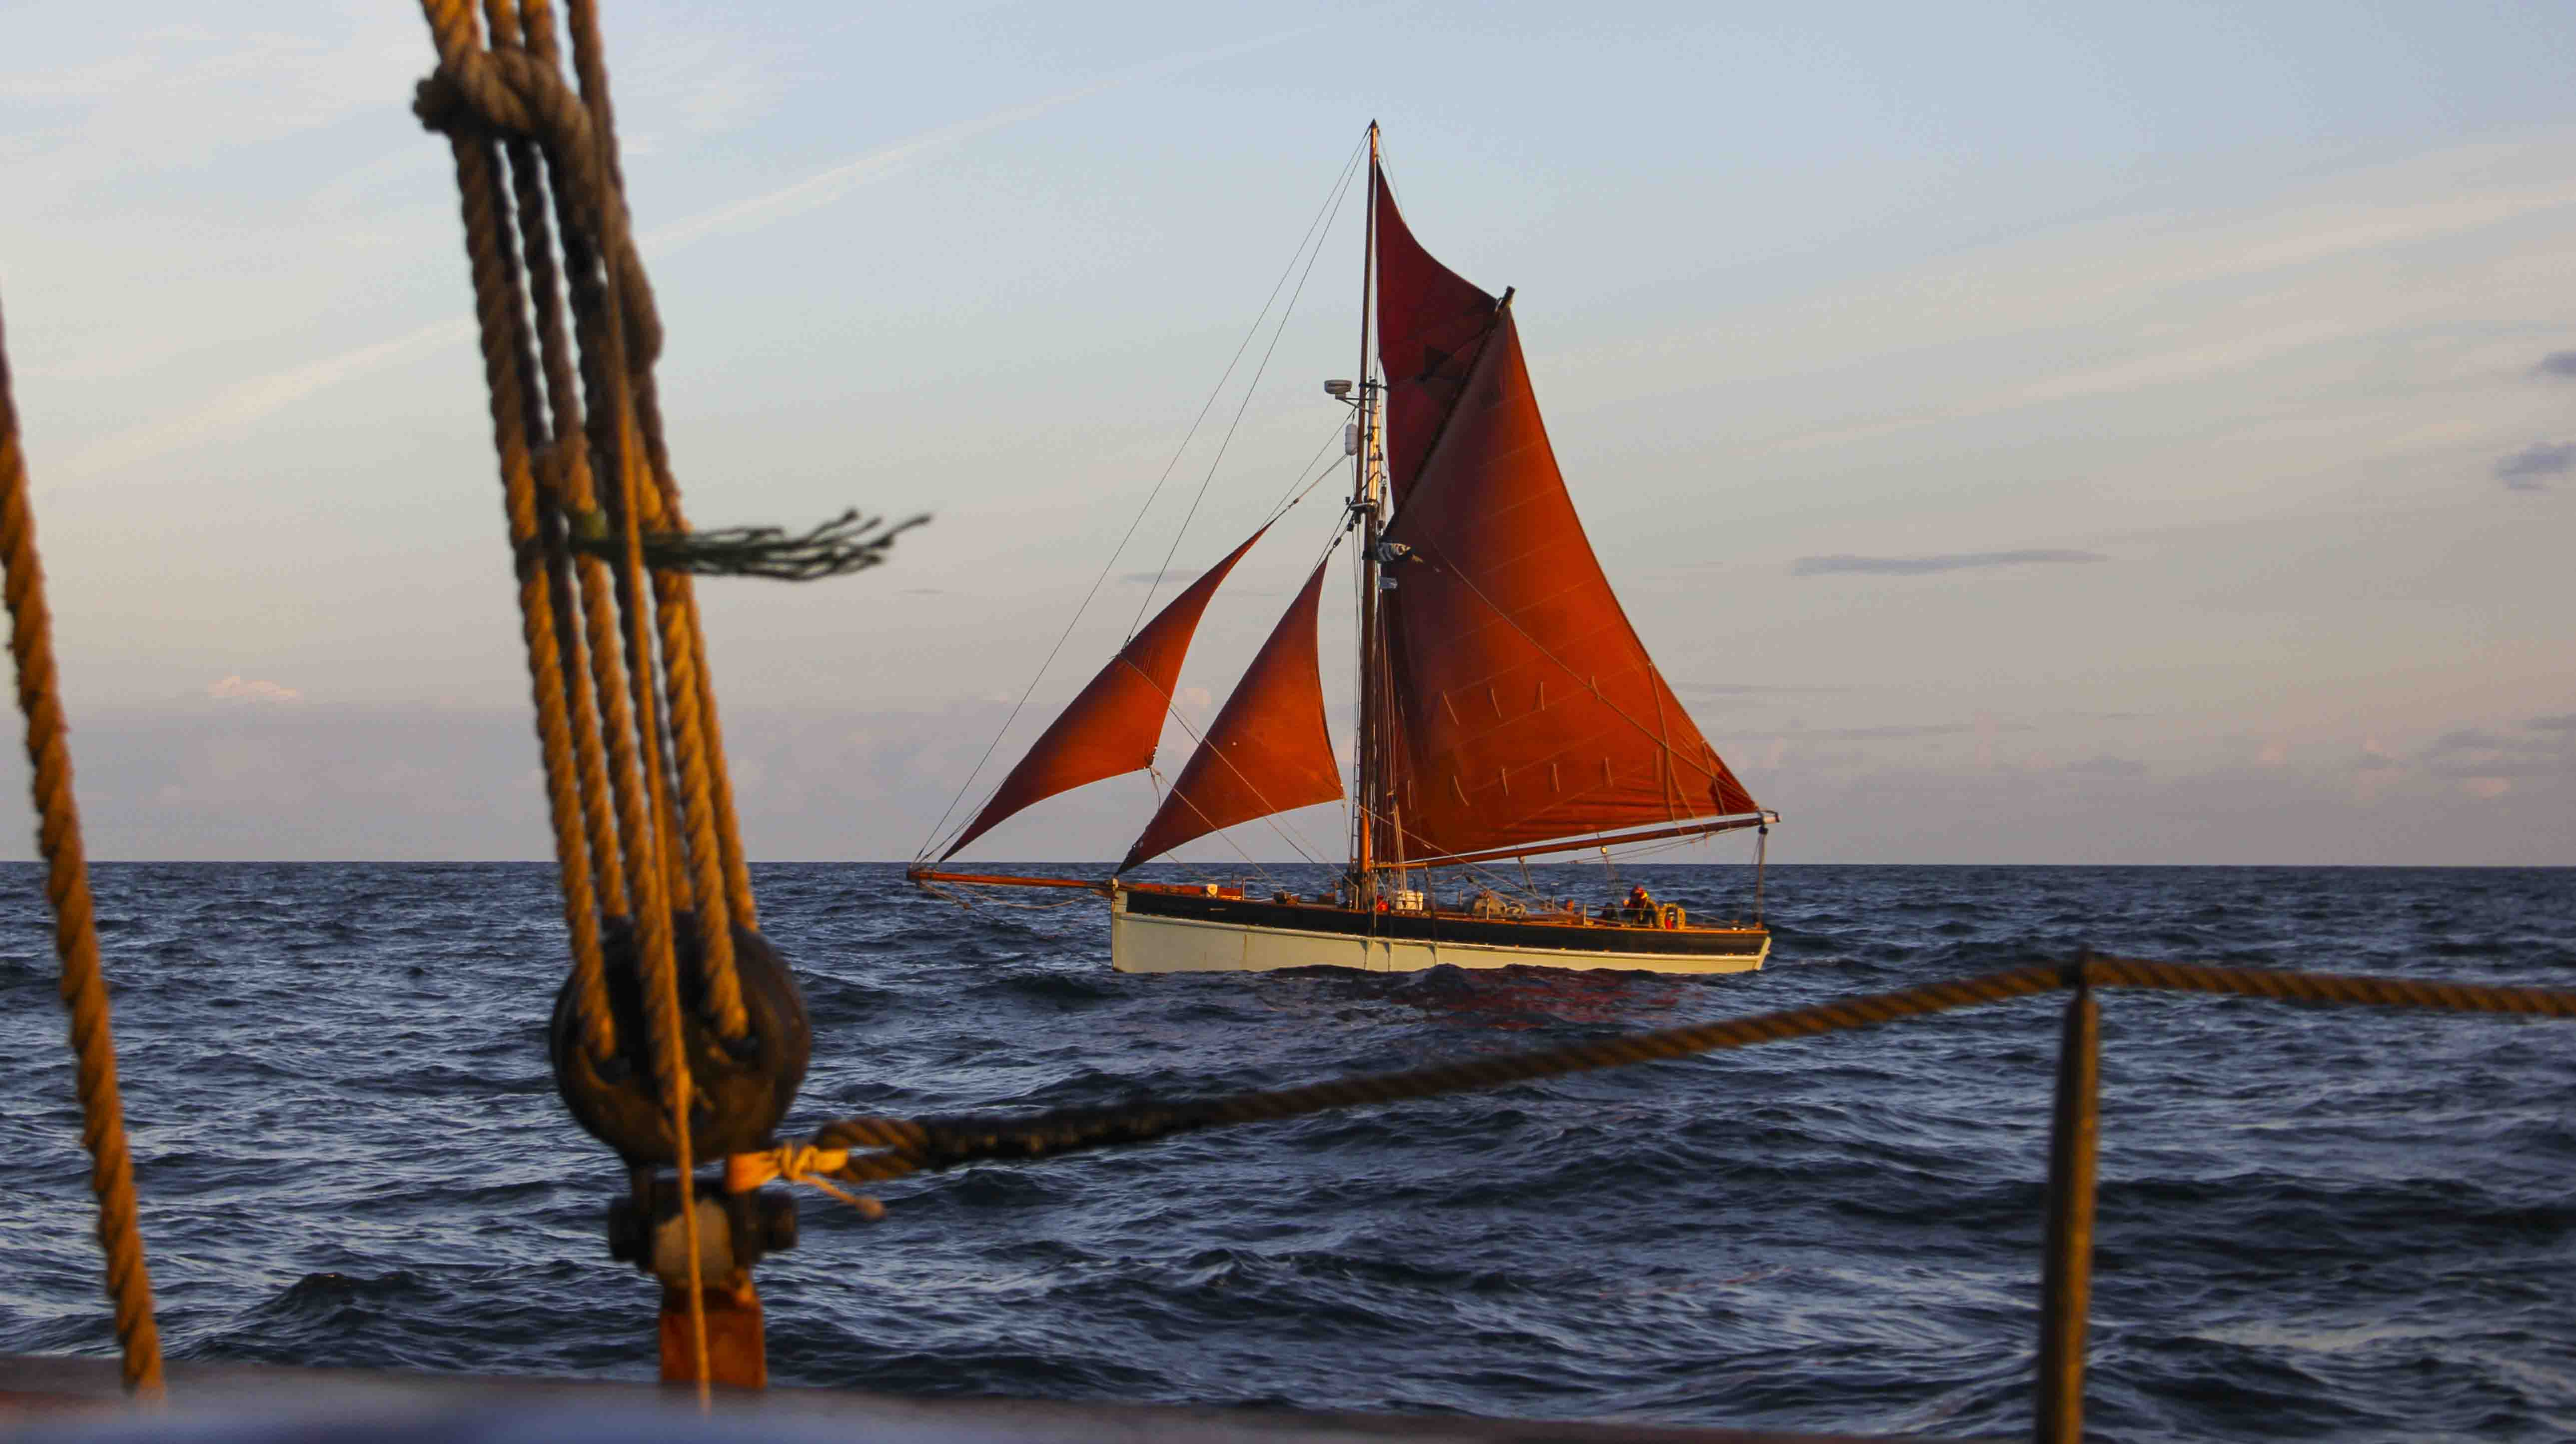 Trinity Sailing Experience from England to France